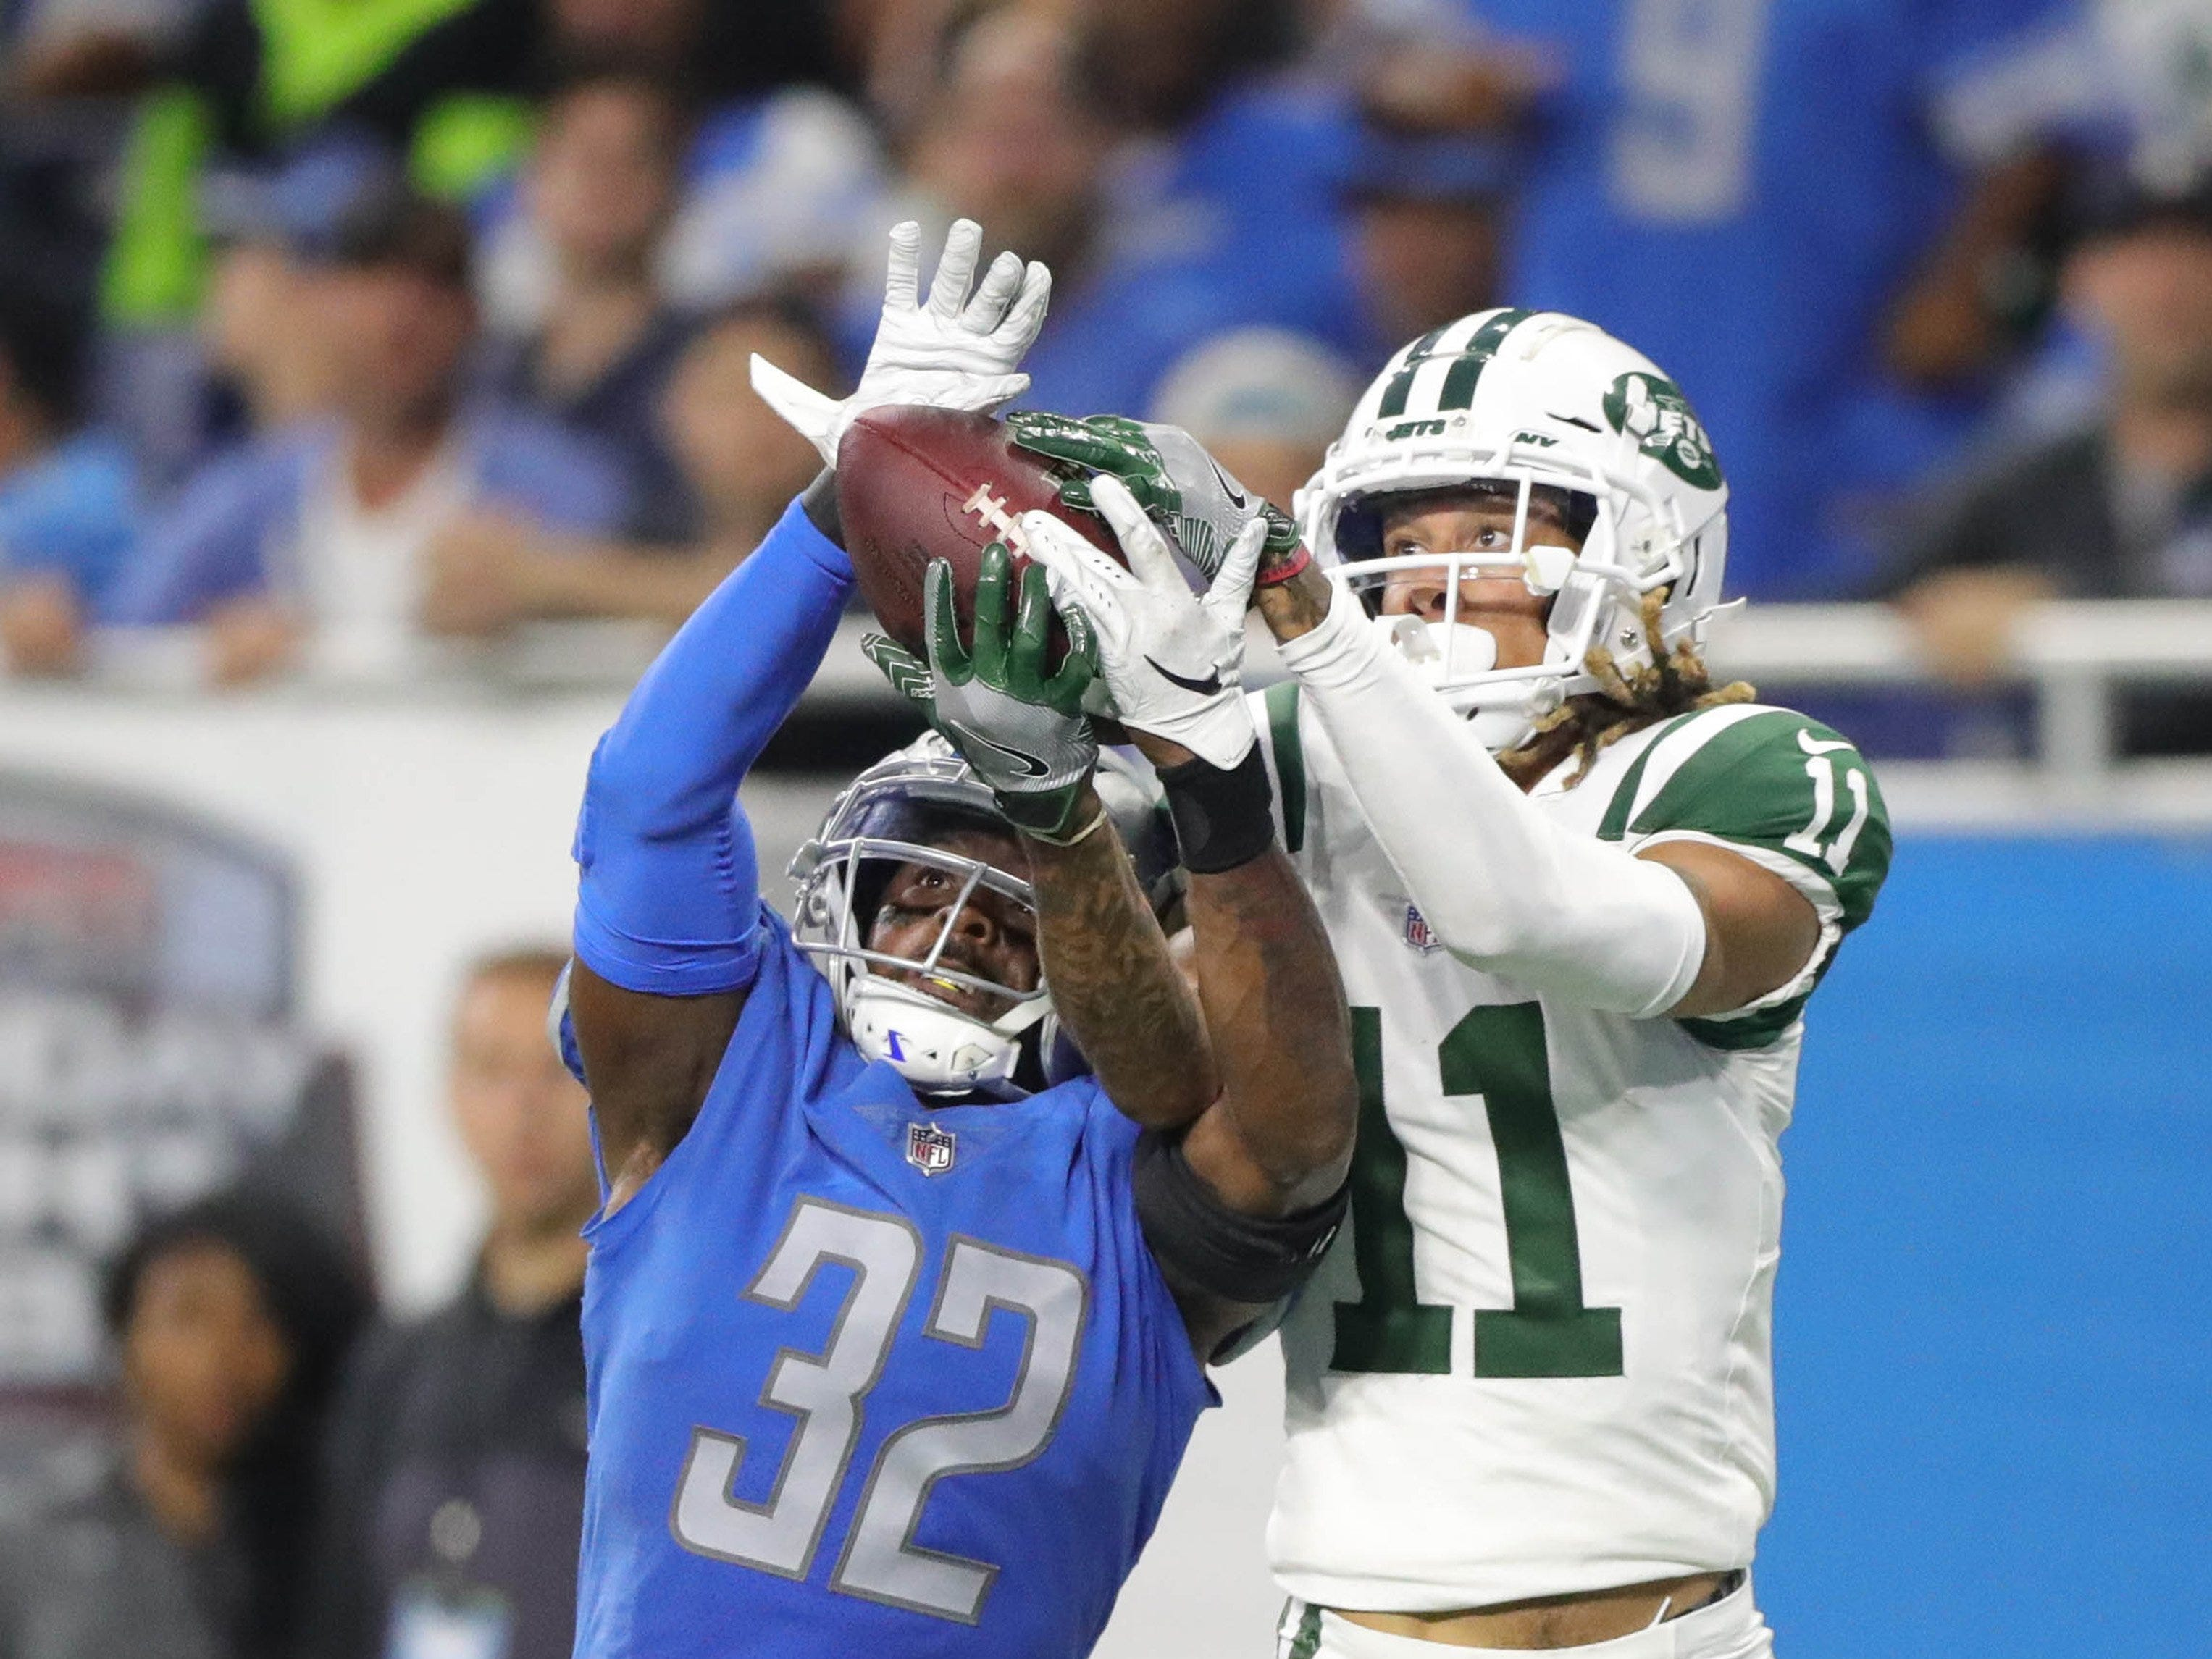 Lions safety Tavon Wilson gives up a touchdown to Jets receiver Robby Anderson during the first half of the Lions' 48-17 loss on Monday, Sept. 10, 2018, at Ford Field.